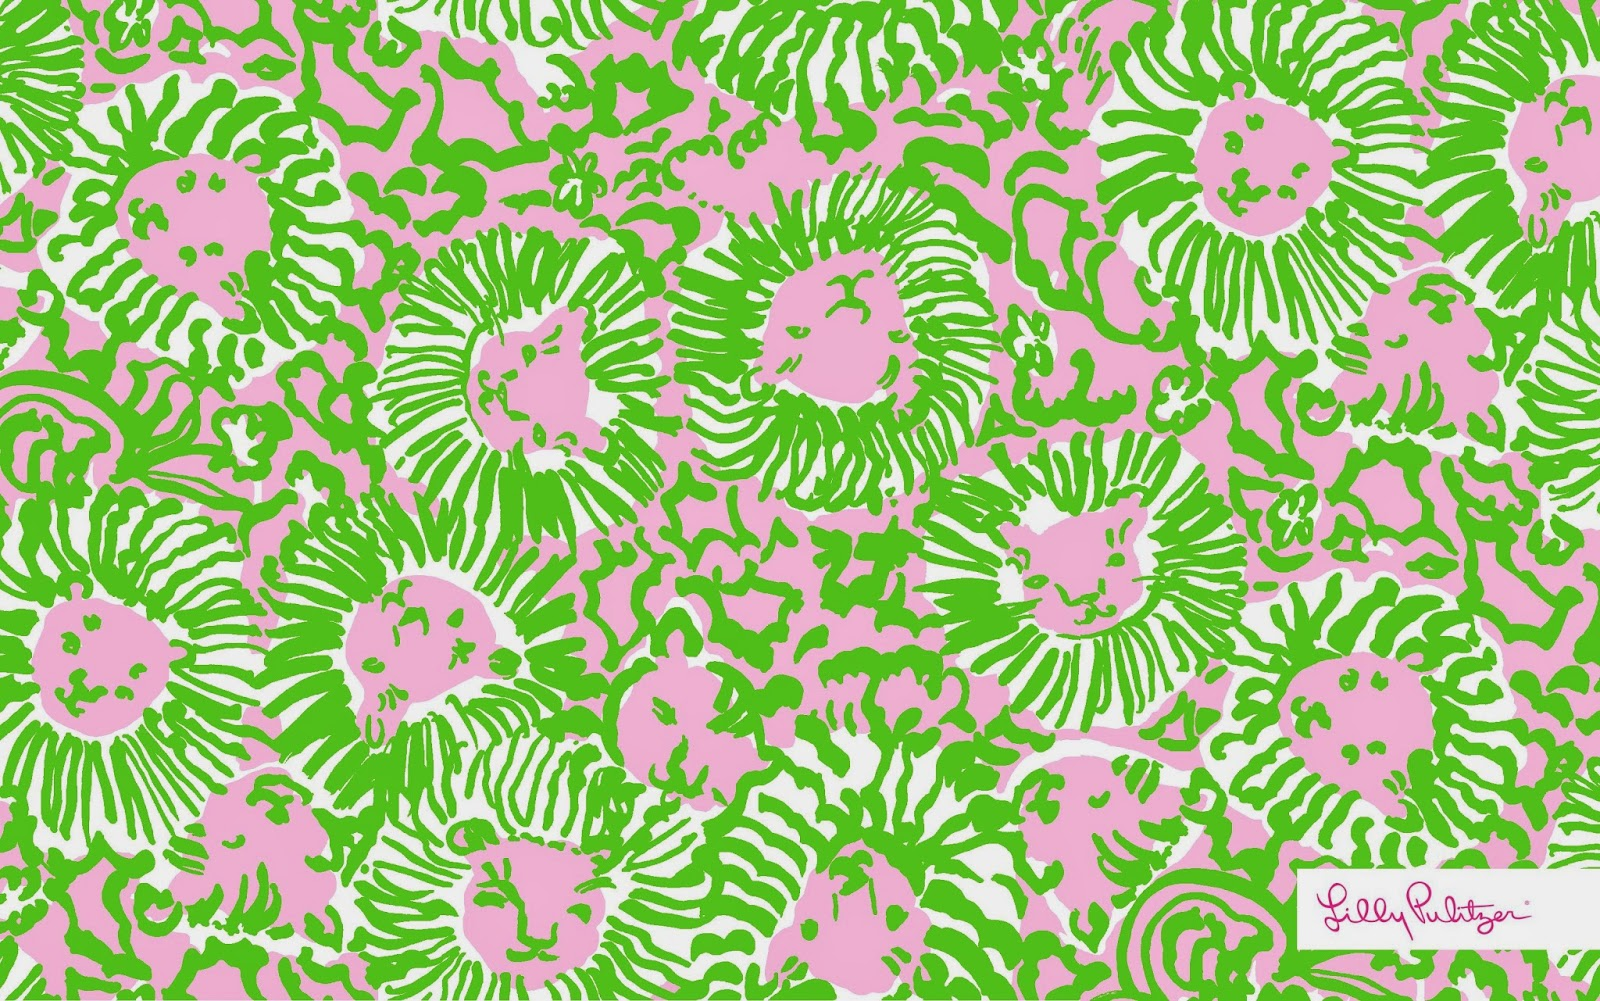 Lilly Pulitzer Patterns Canadianprep Lilly Pulitzer Pattern Play For Tech